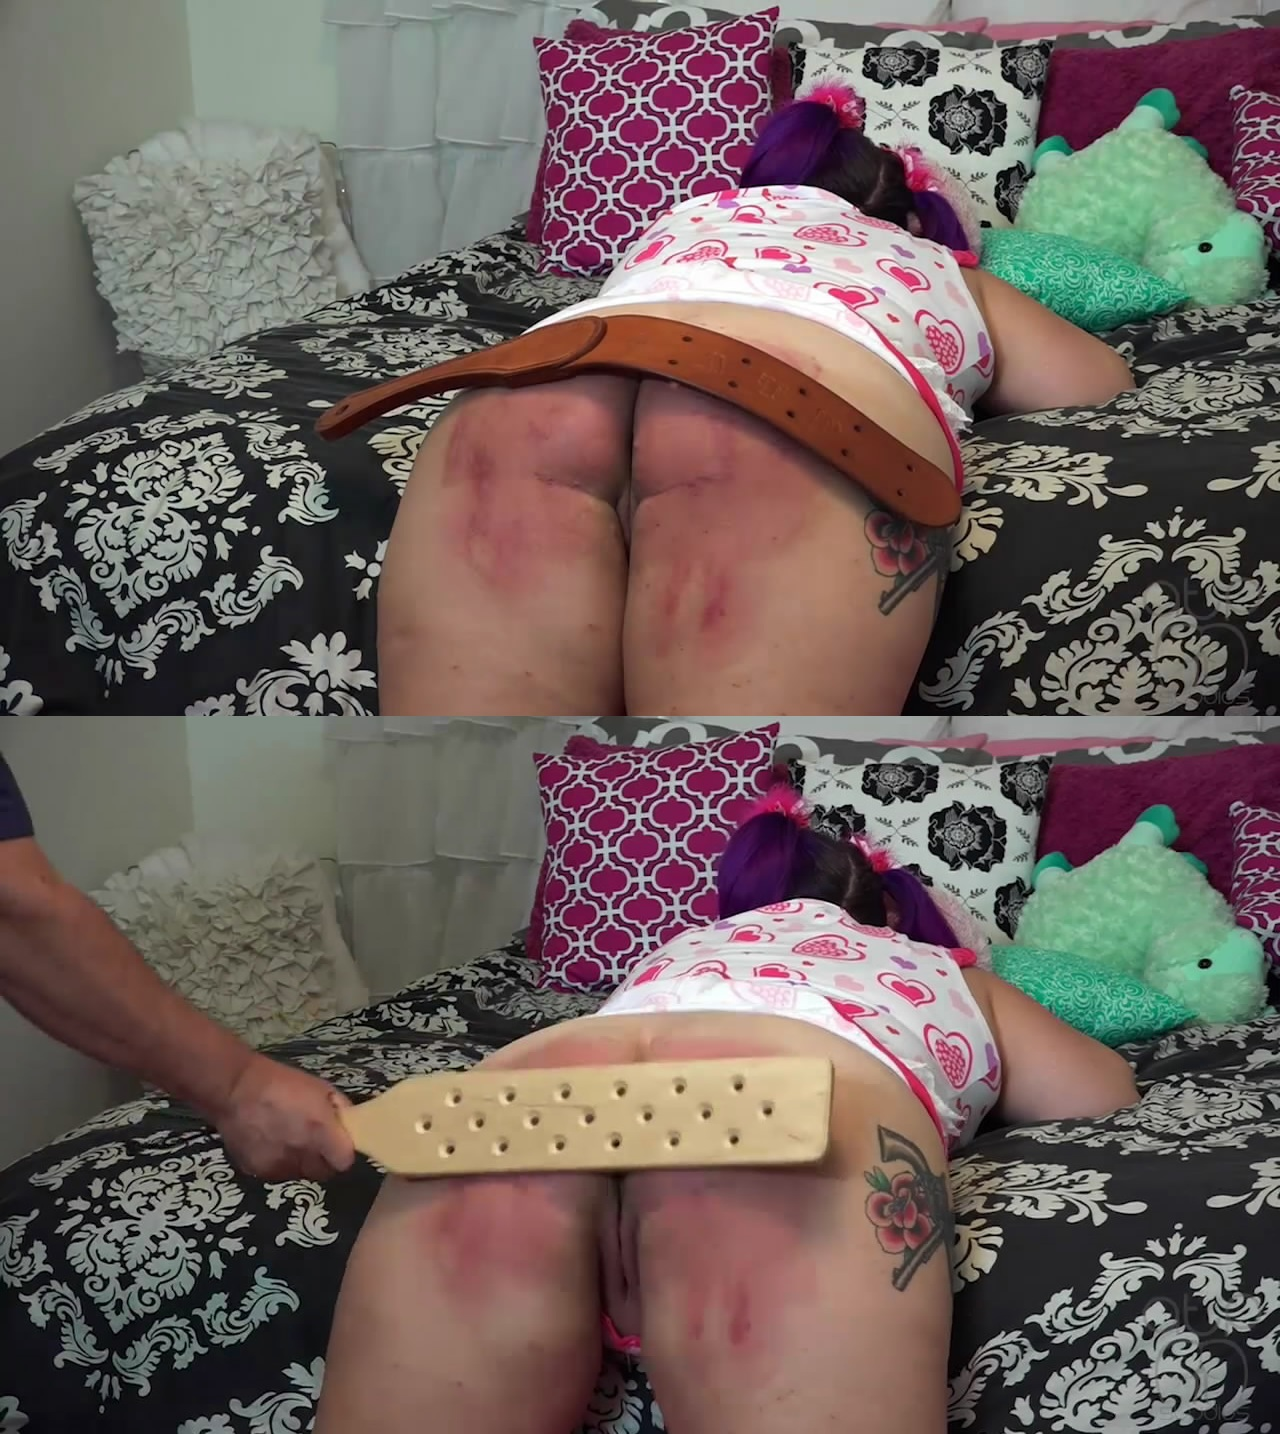 MP4/Full HD – SOBBING UNDER THE STRAP AND PADDLE